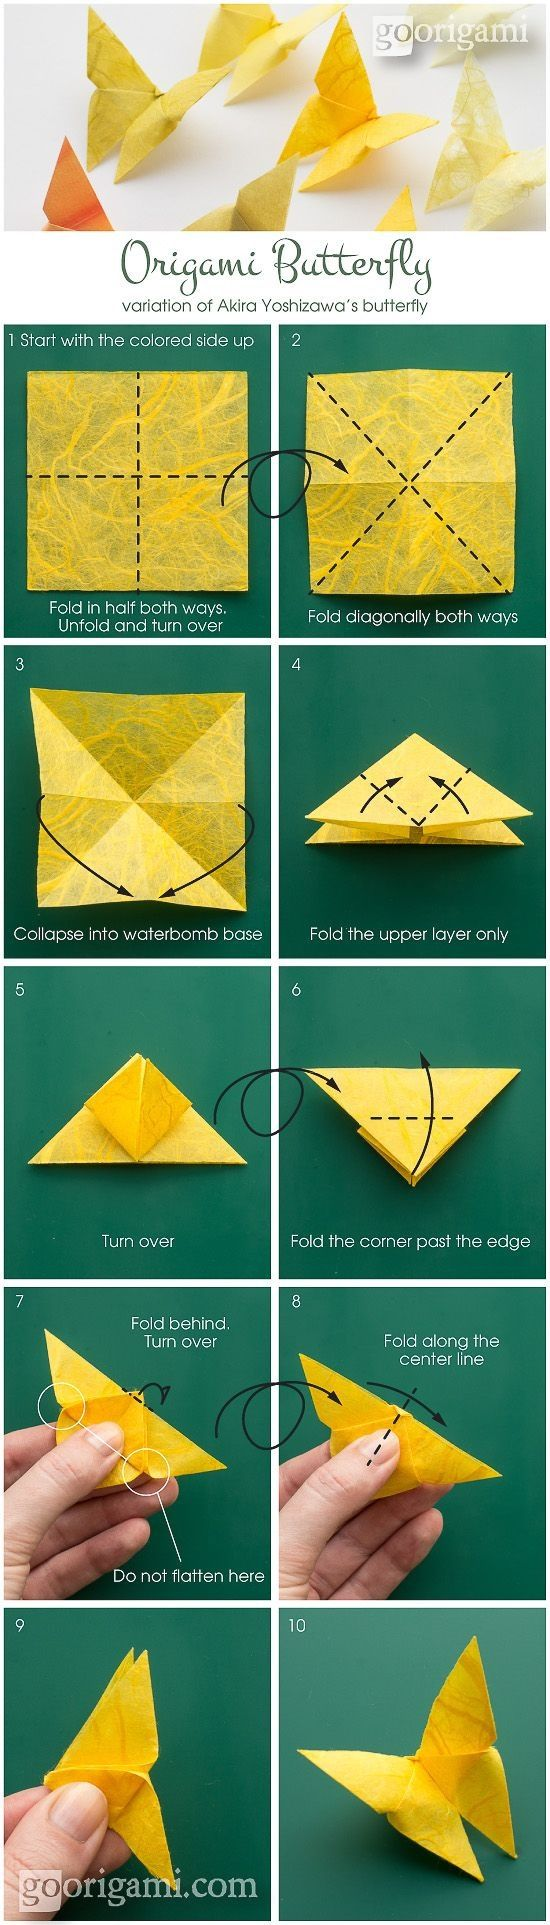 How to Make Paper Butterflies